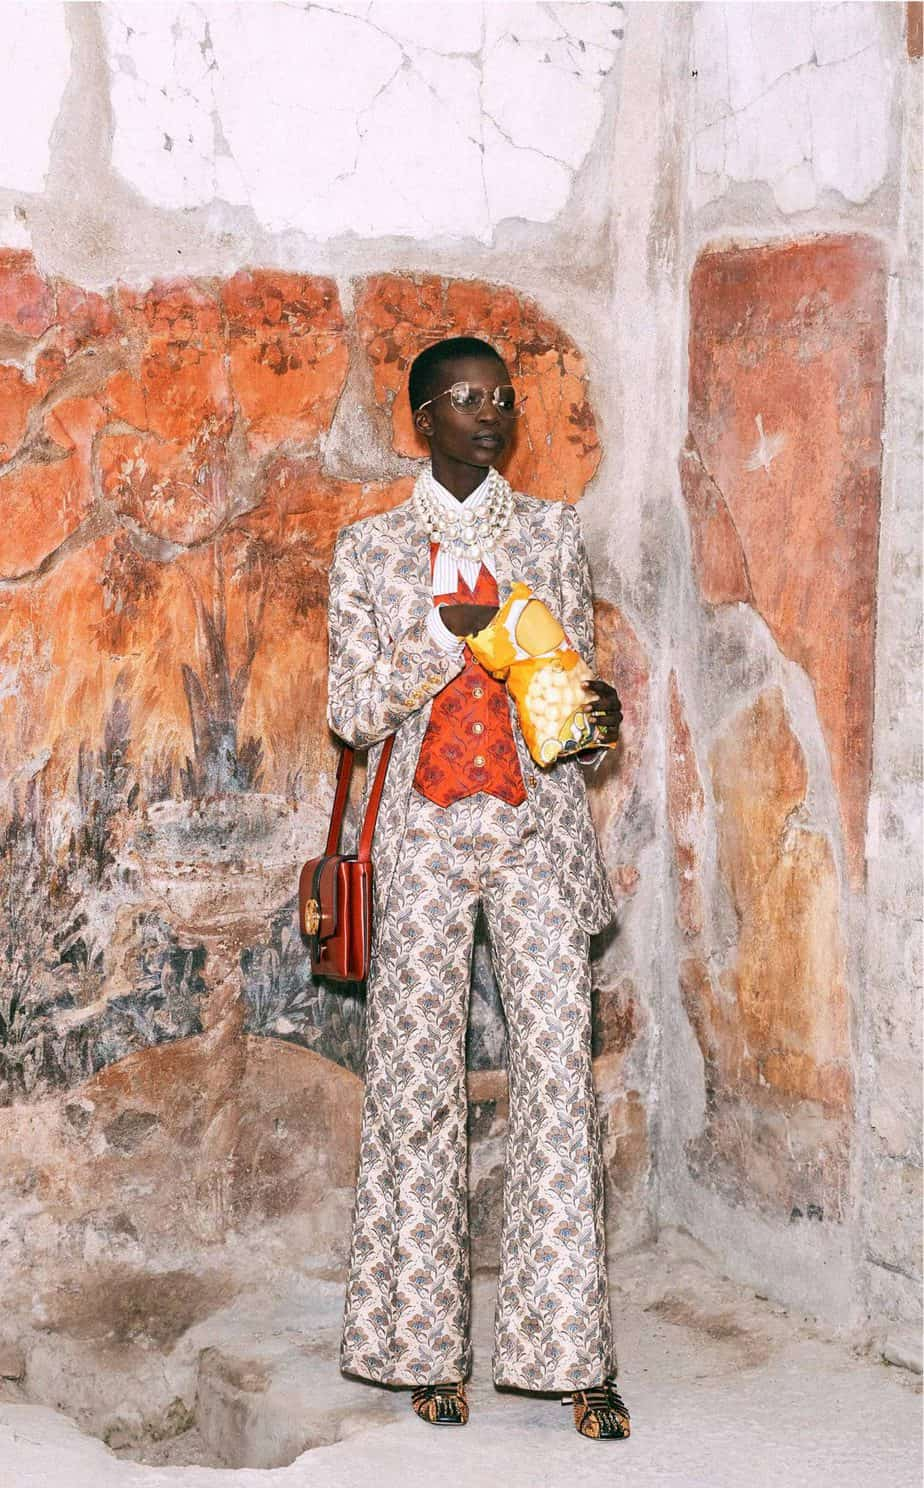 GUCCI, FALL 2019. WOMEN'S FASHION, Photographer Harmony Korine, Art Director, Christopher Simmonds - 13